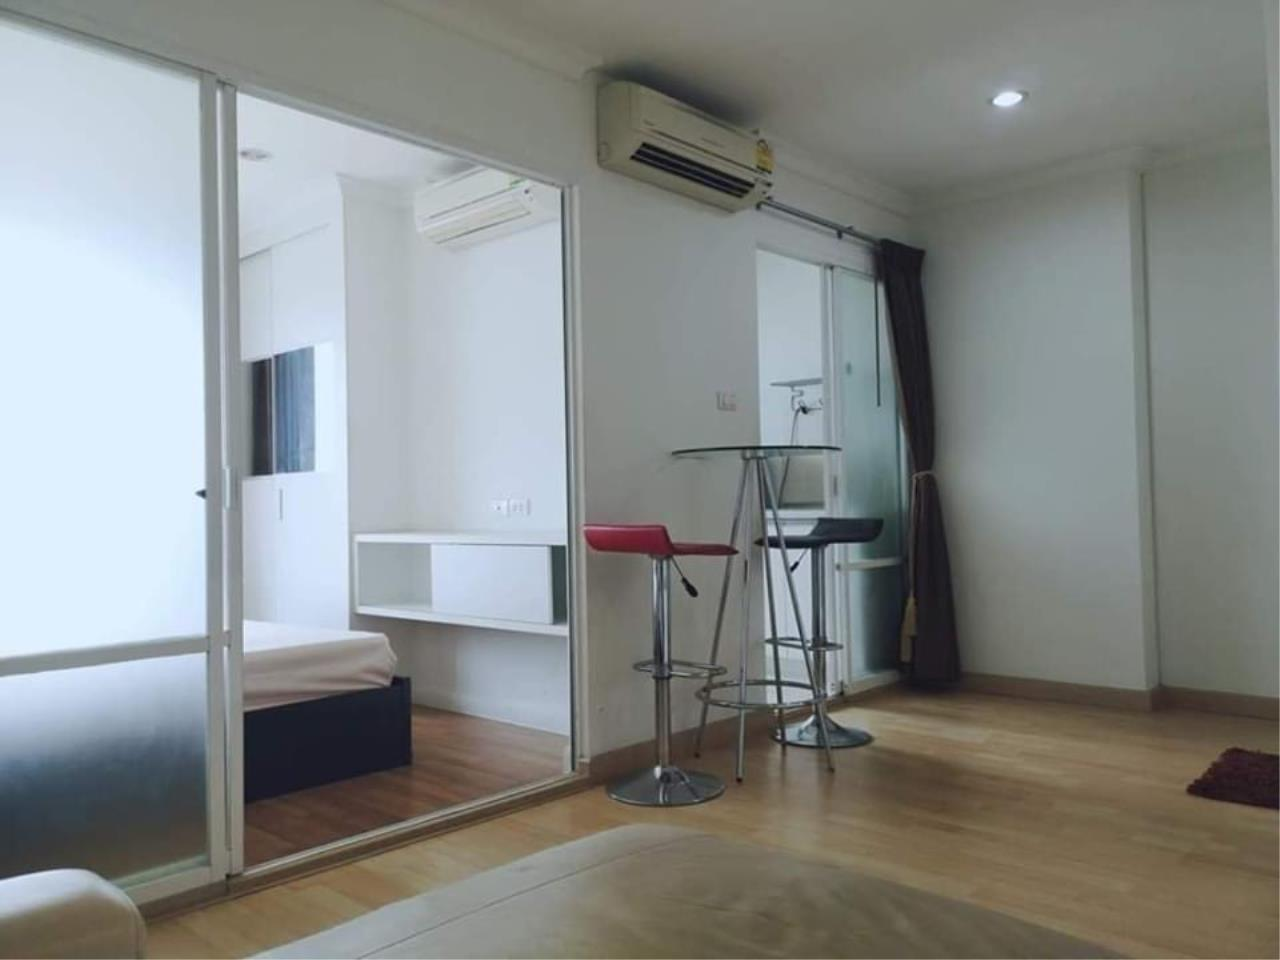 Agent - Phapayawarin Agency's Lumpini Place Rama IX-Ratchada for Rent, 1 Bedroom 1 Bathroom, 38 Sq.m., MRT Phraram 9  8